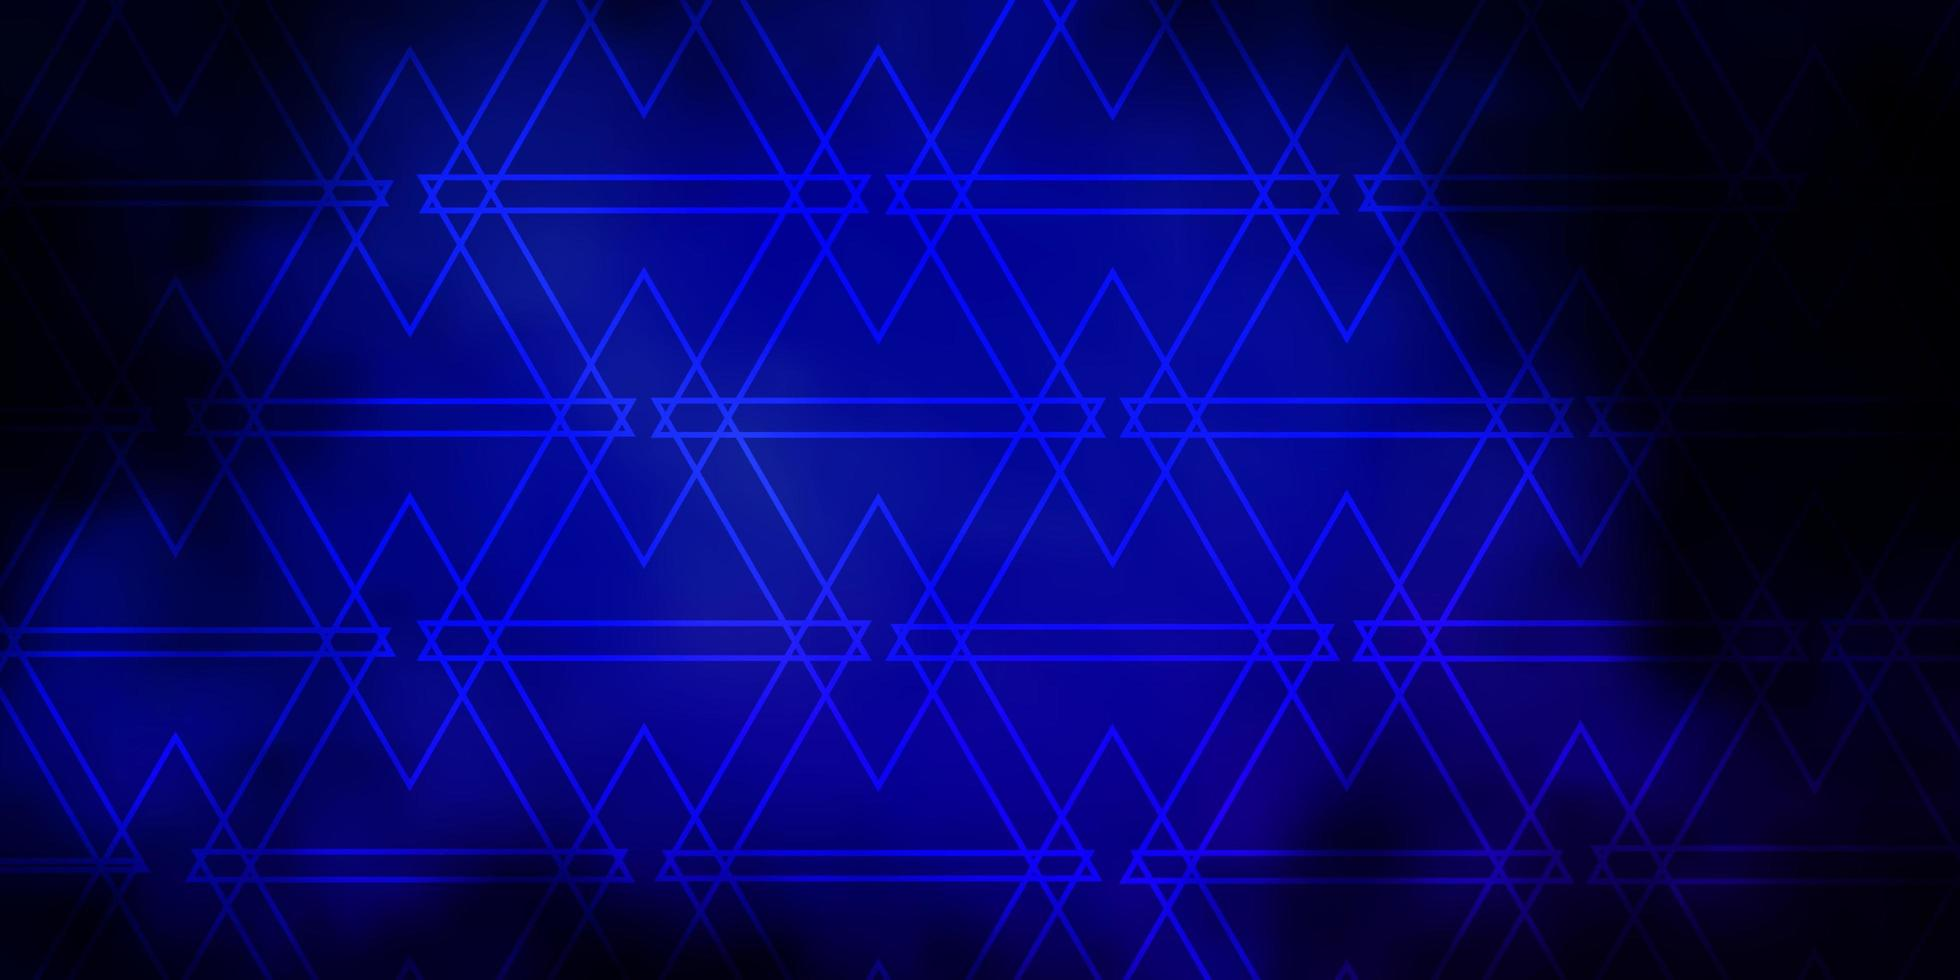 Dark BLUE vector background with lines, triangles.